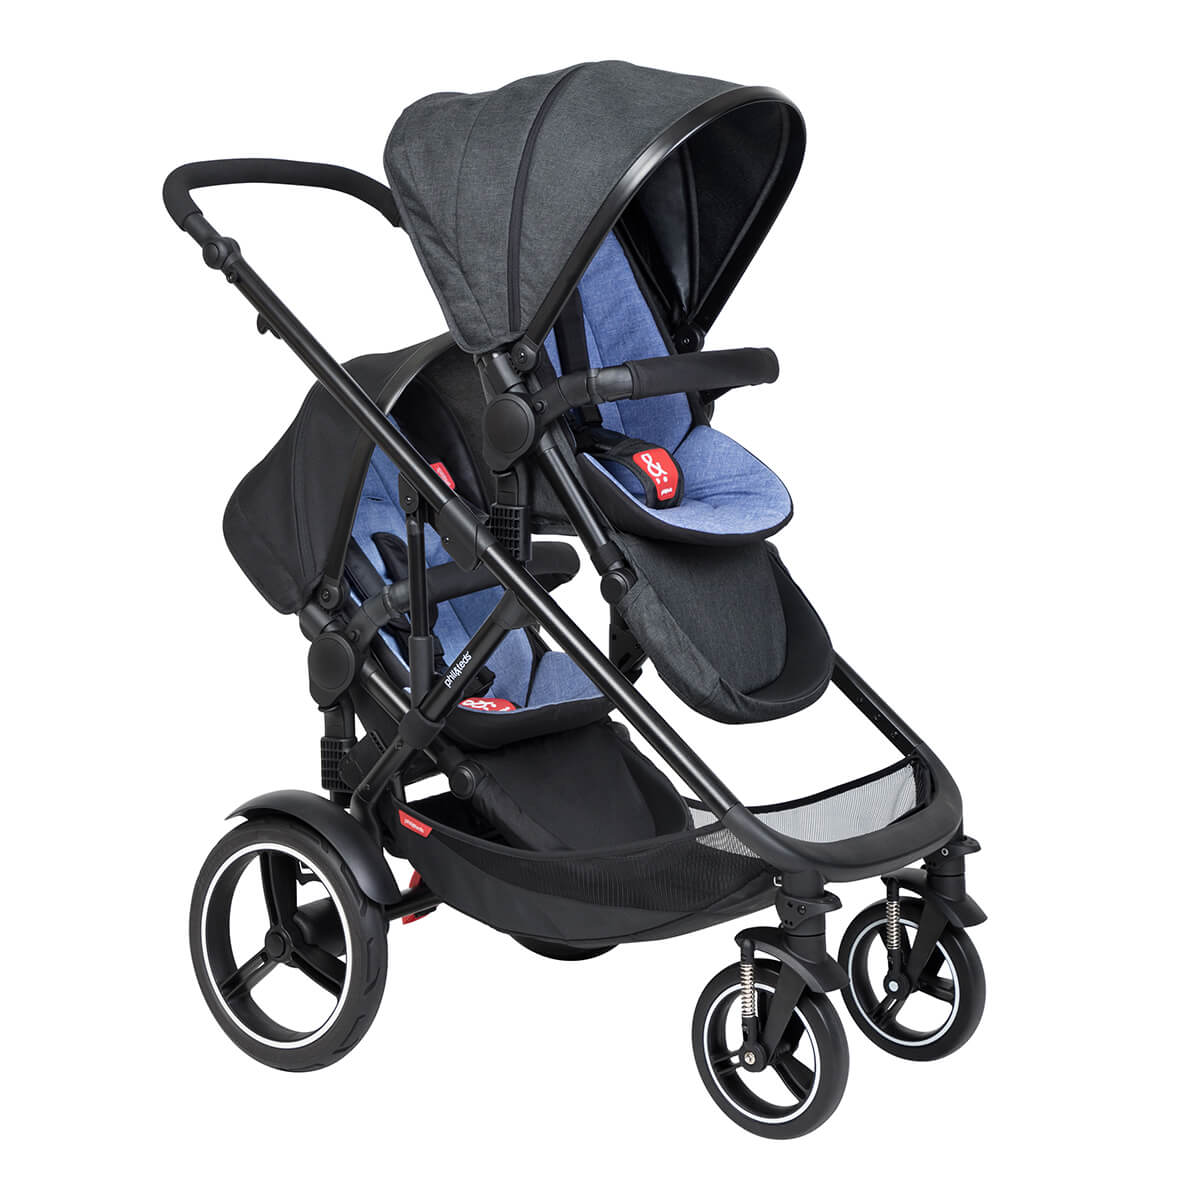 https://cdn.accentuate.io/4363393695797/19118870757429/philteds-voyager-inline-buggy-with-double-kit-in-rear-in-sky-blue-colour-v1626404047971.jpg?1200x1200